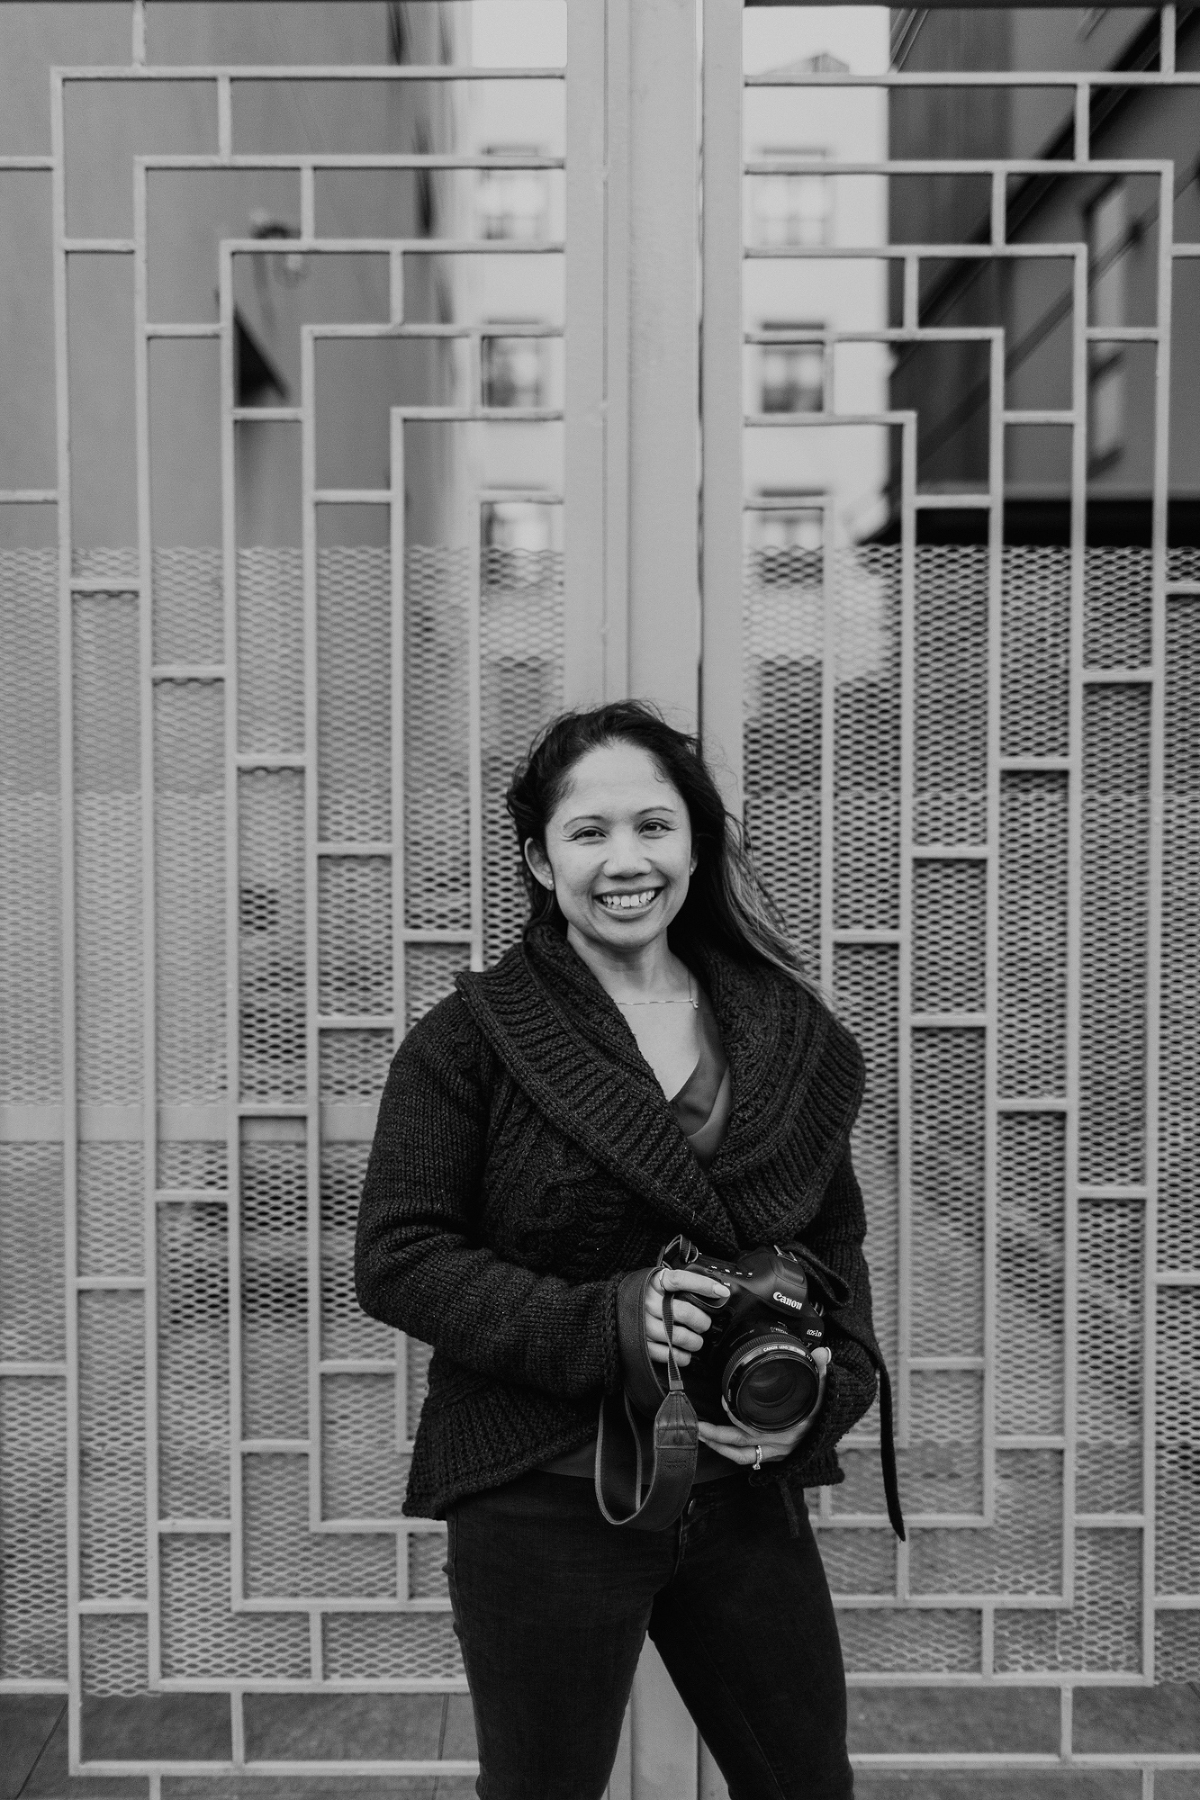 Black and white photo of Arlene D Marston in front of a gate with geometric patterns